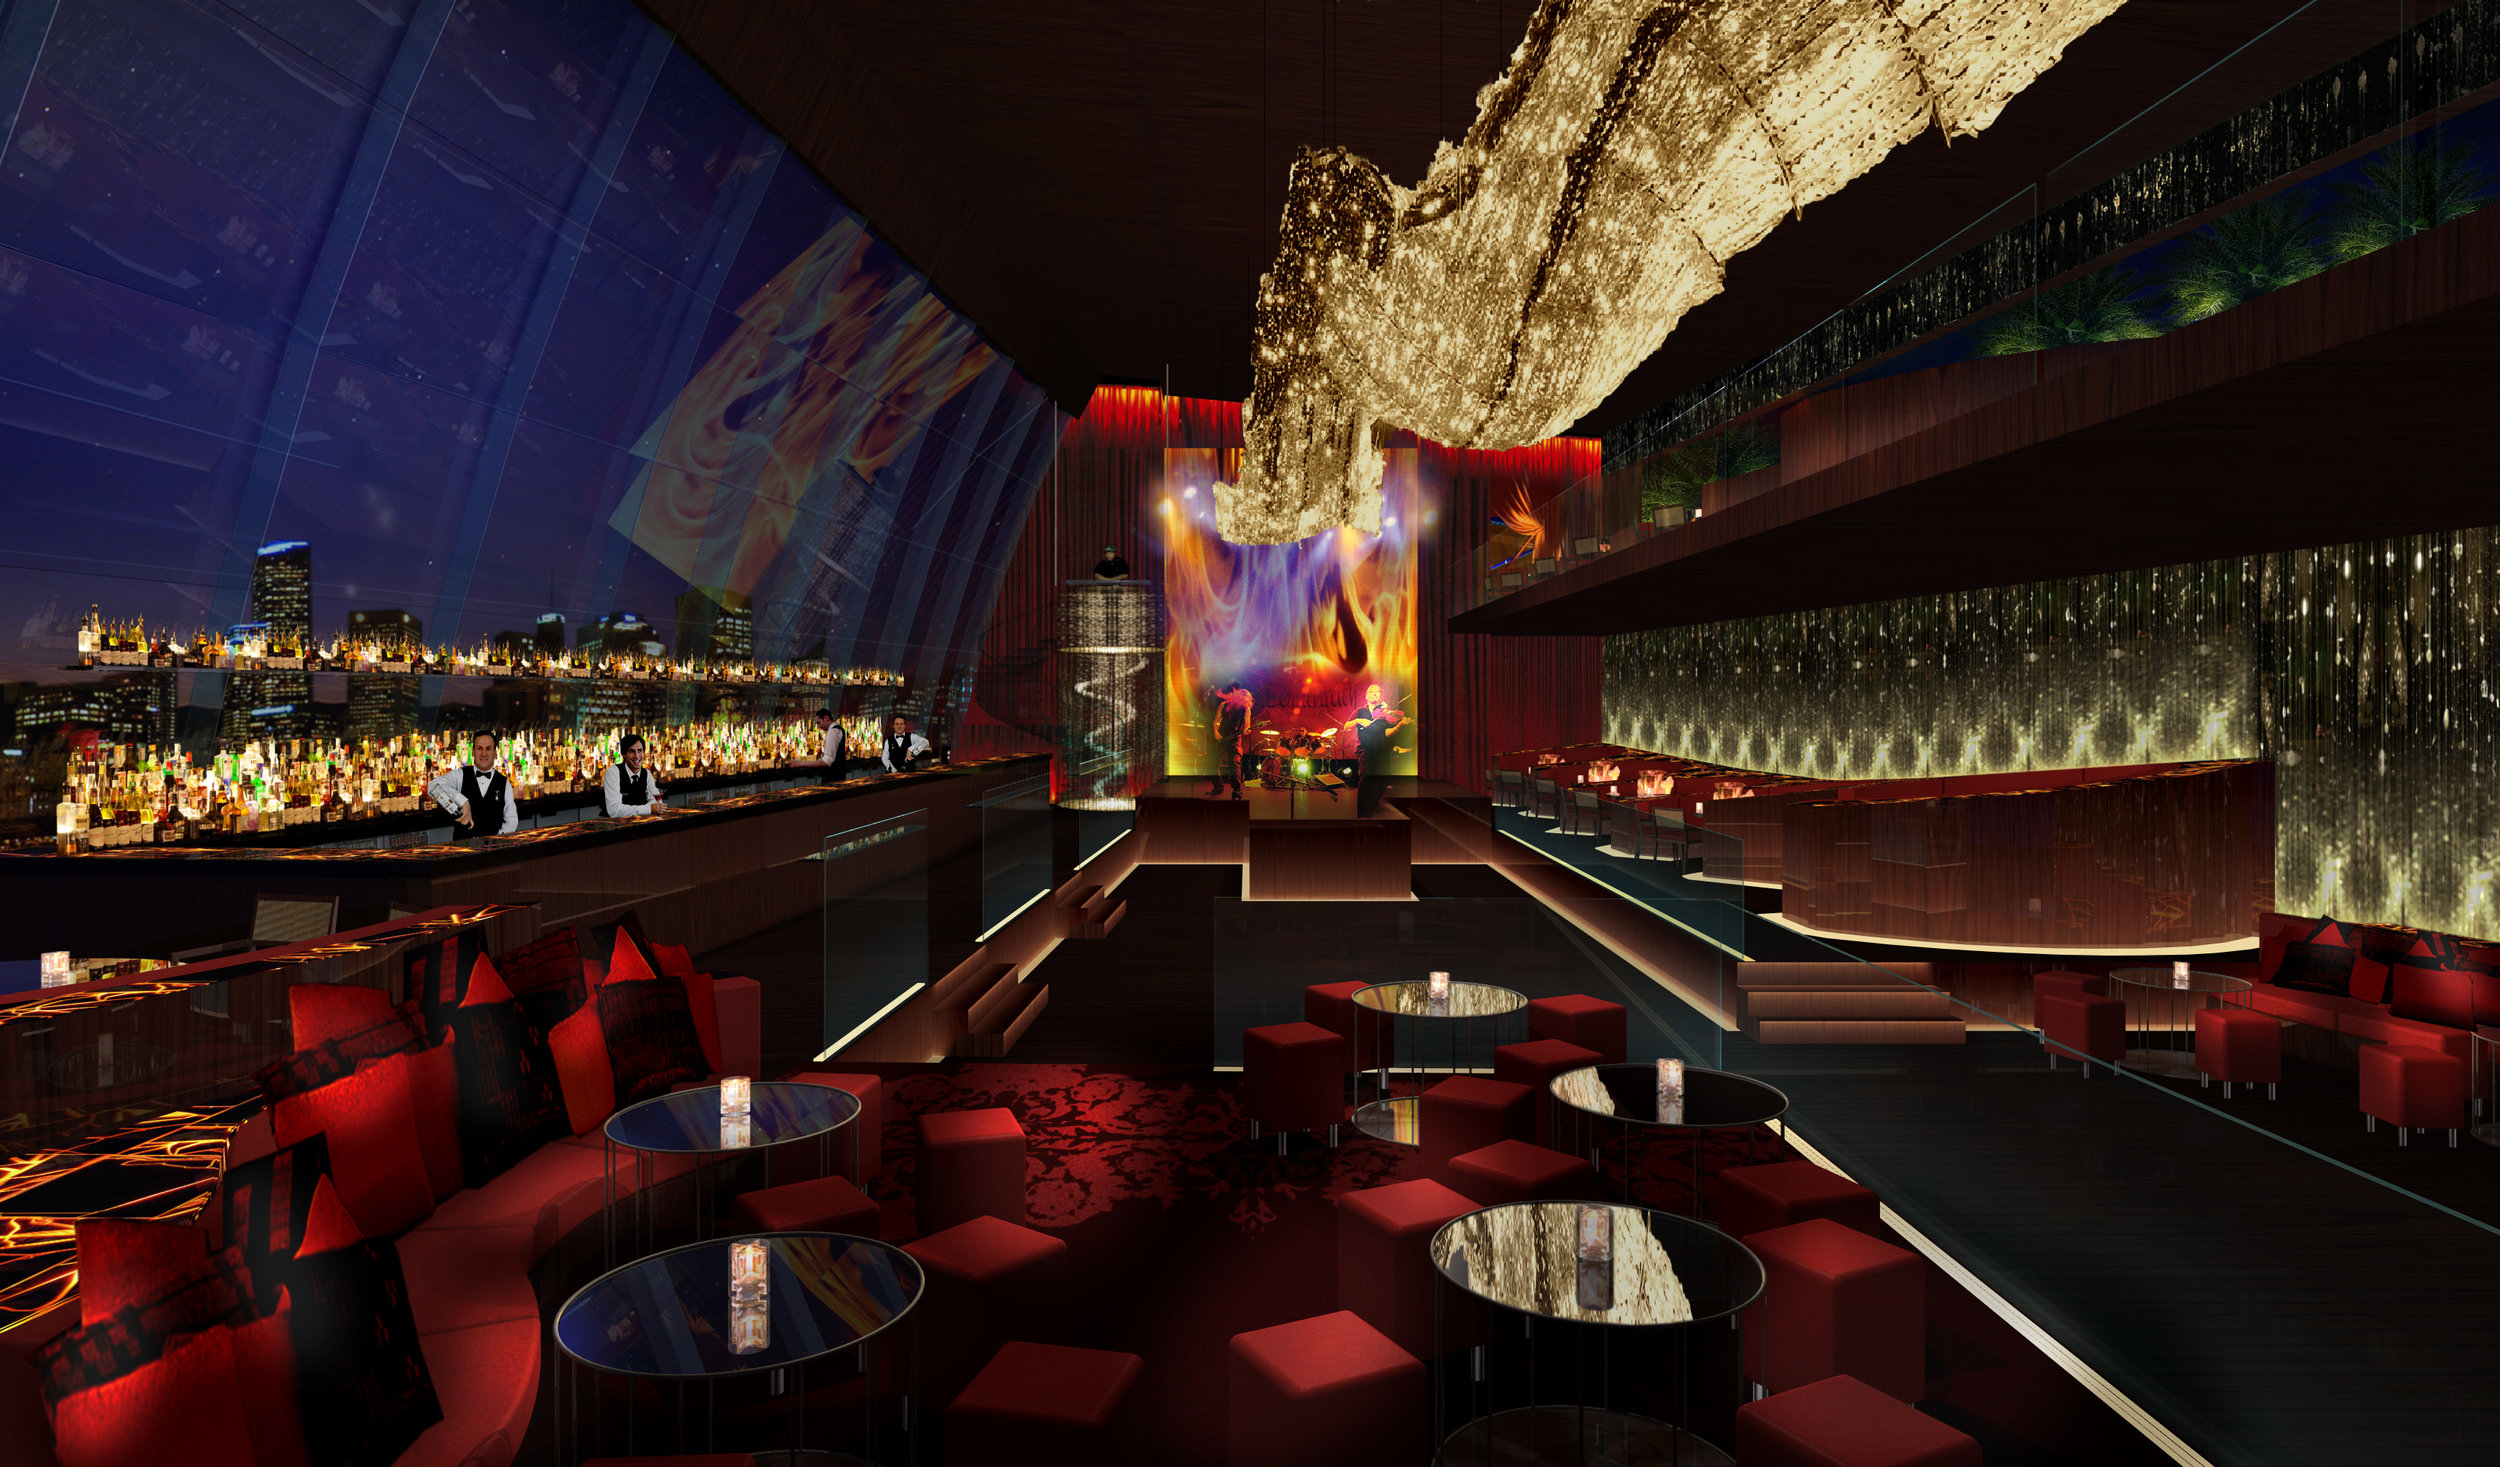 Heat night club-view 1.jpg